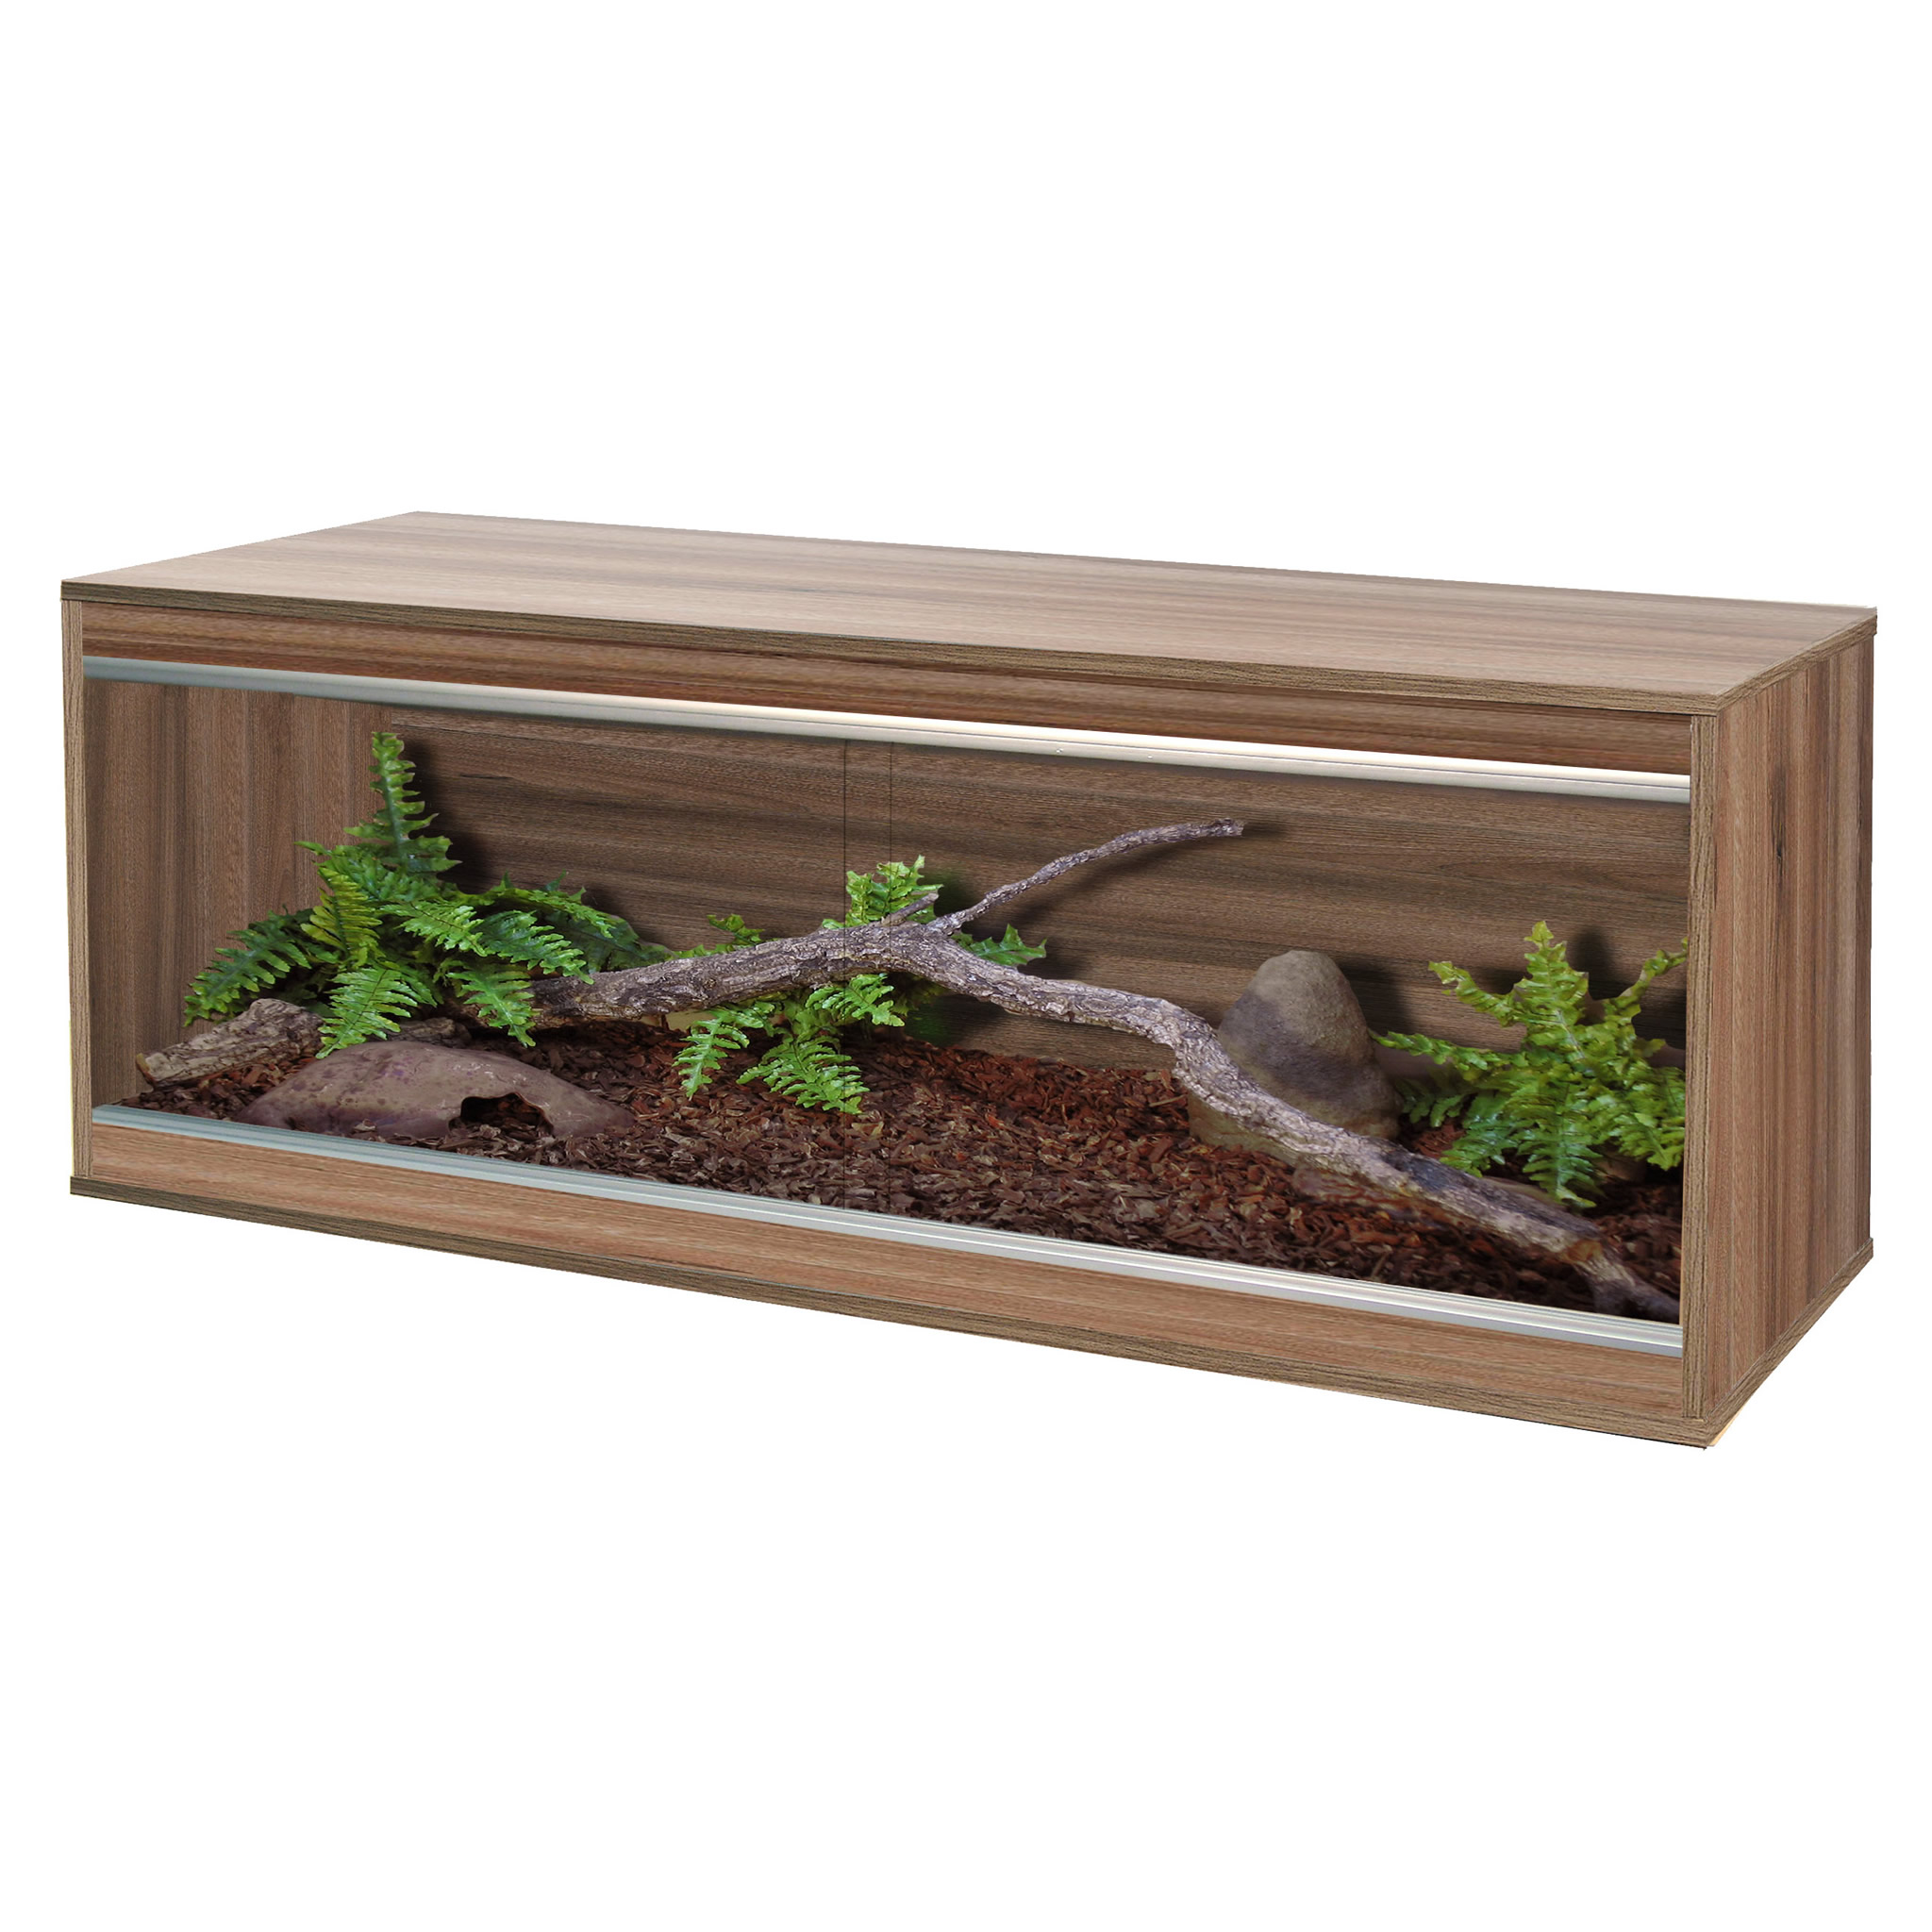 Tortoise table species specific products vivexotic vivariums - Tortoise Table Species Specific Products Vivexotic Vivariums 46